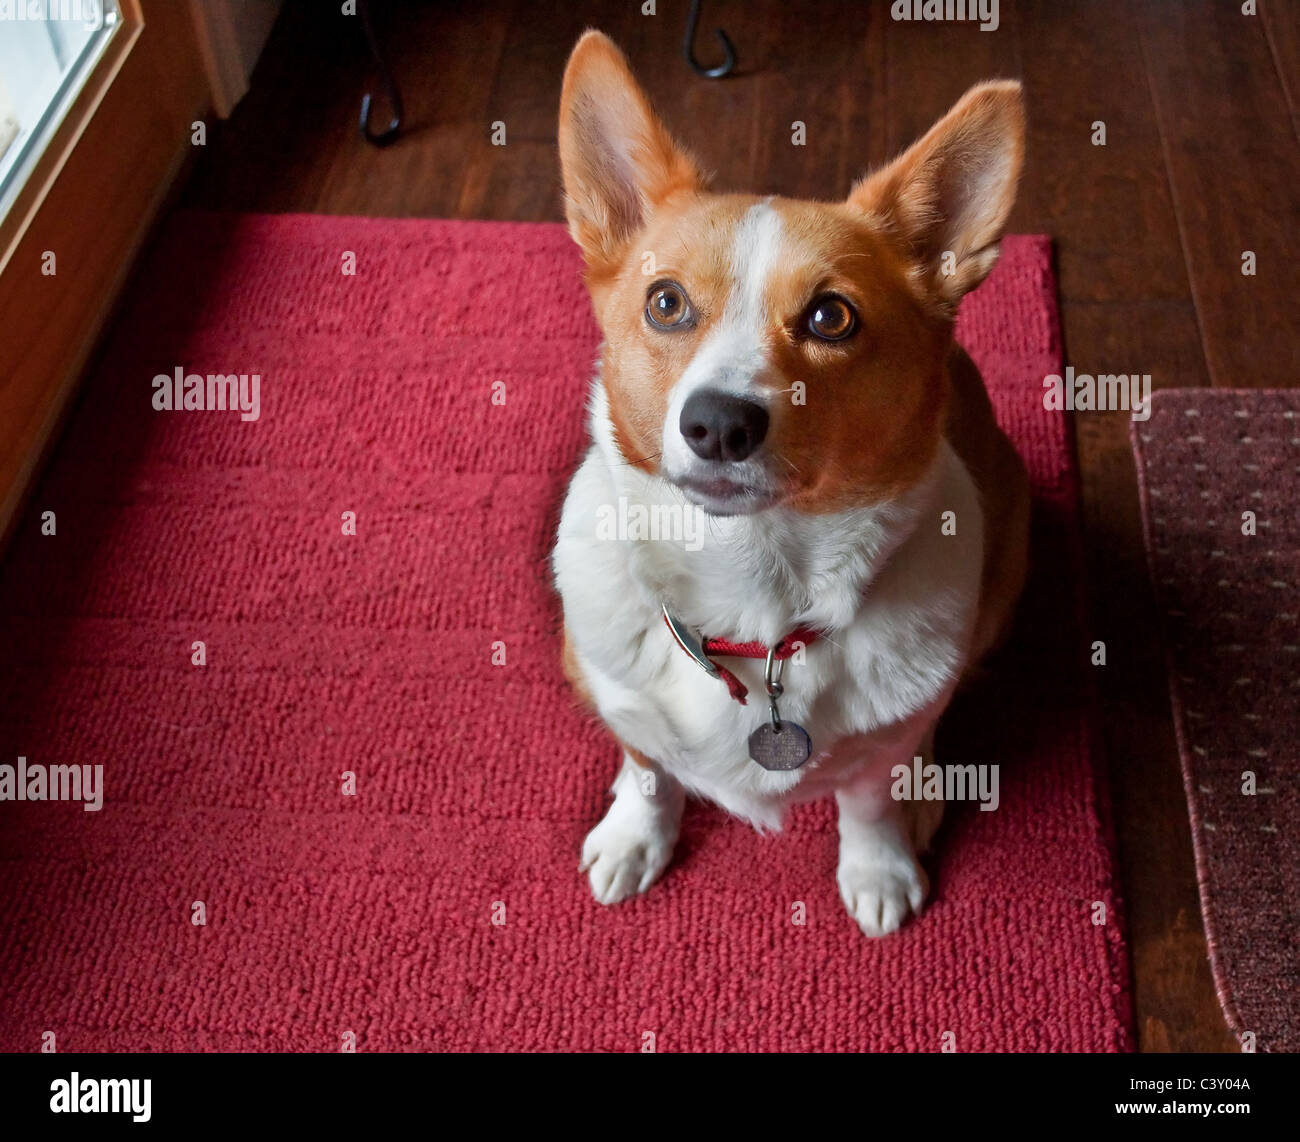 This cute Pembroke Welsh Corgi dog is sitting and looking with an intent expression at the camera. She is on a burgundy - Stock Image